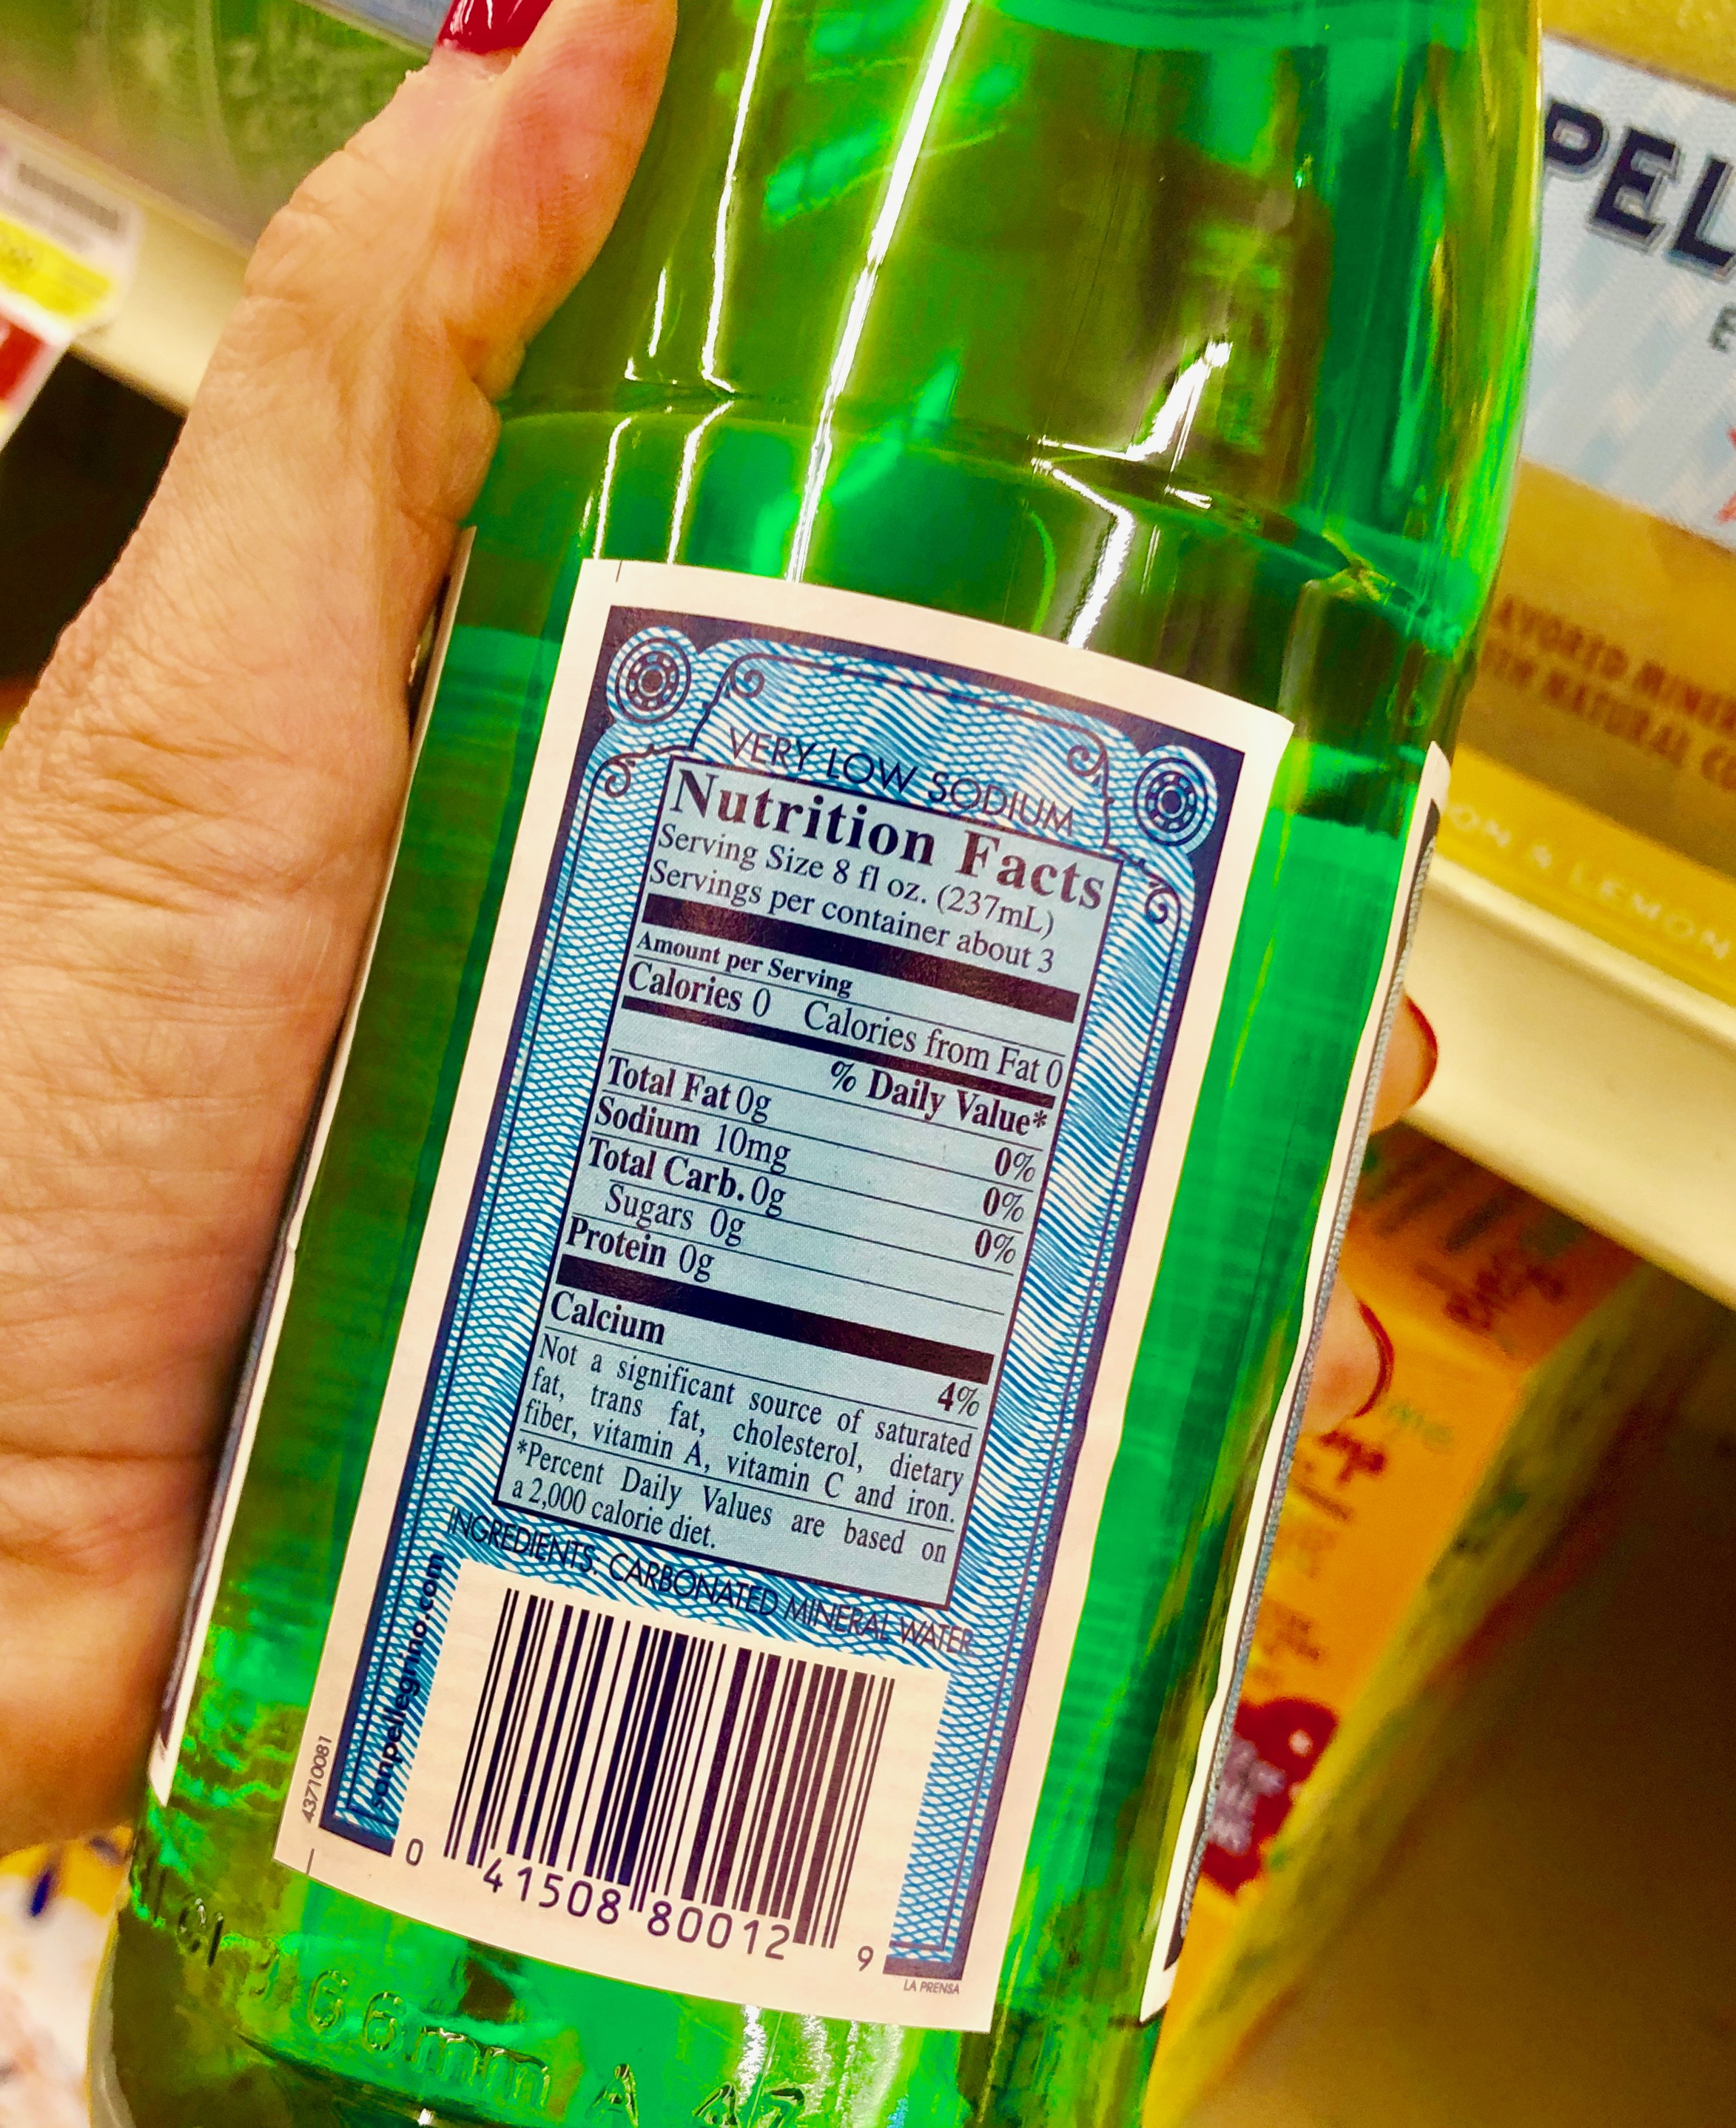 Some bottled waters have a high sodium content. Read the labels thoroughly.